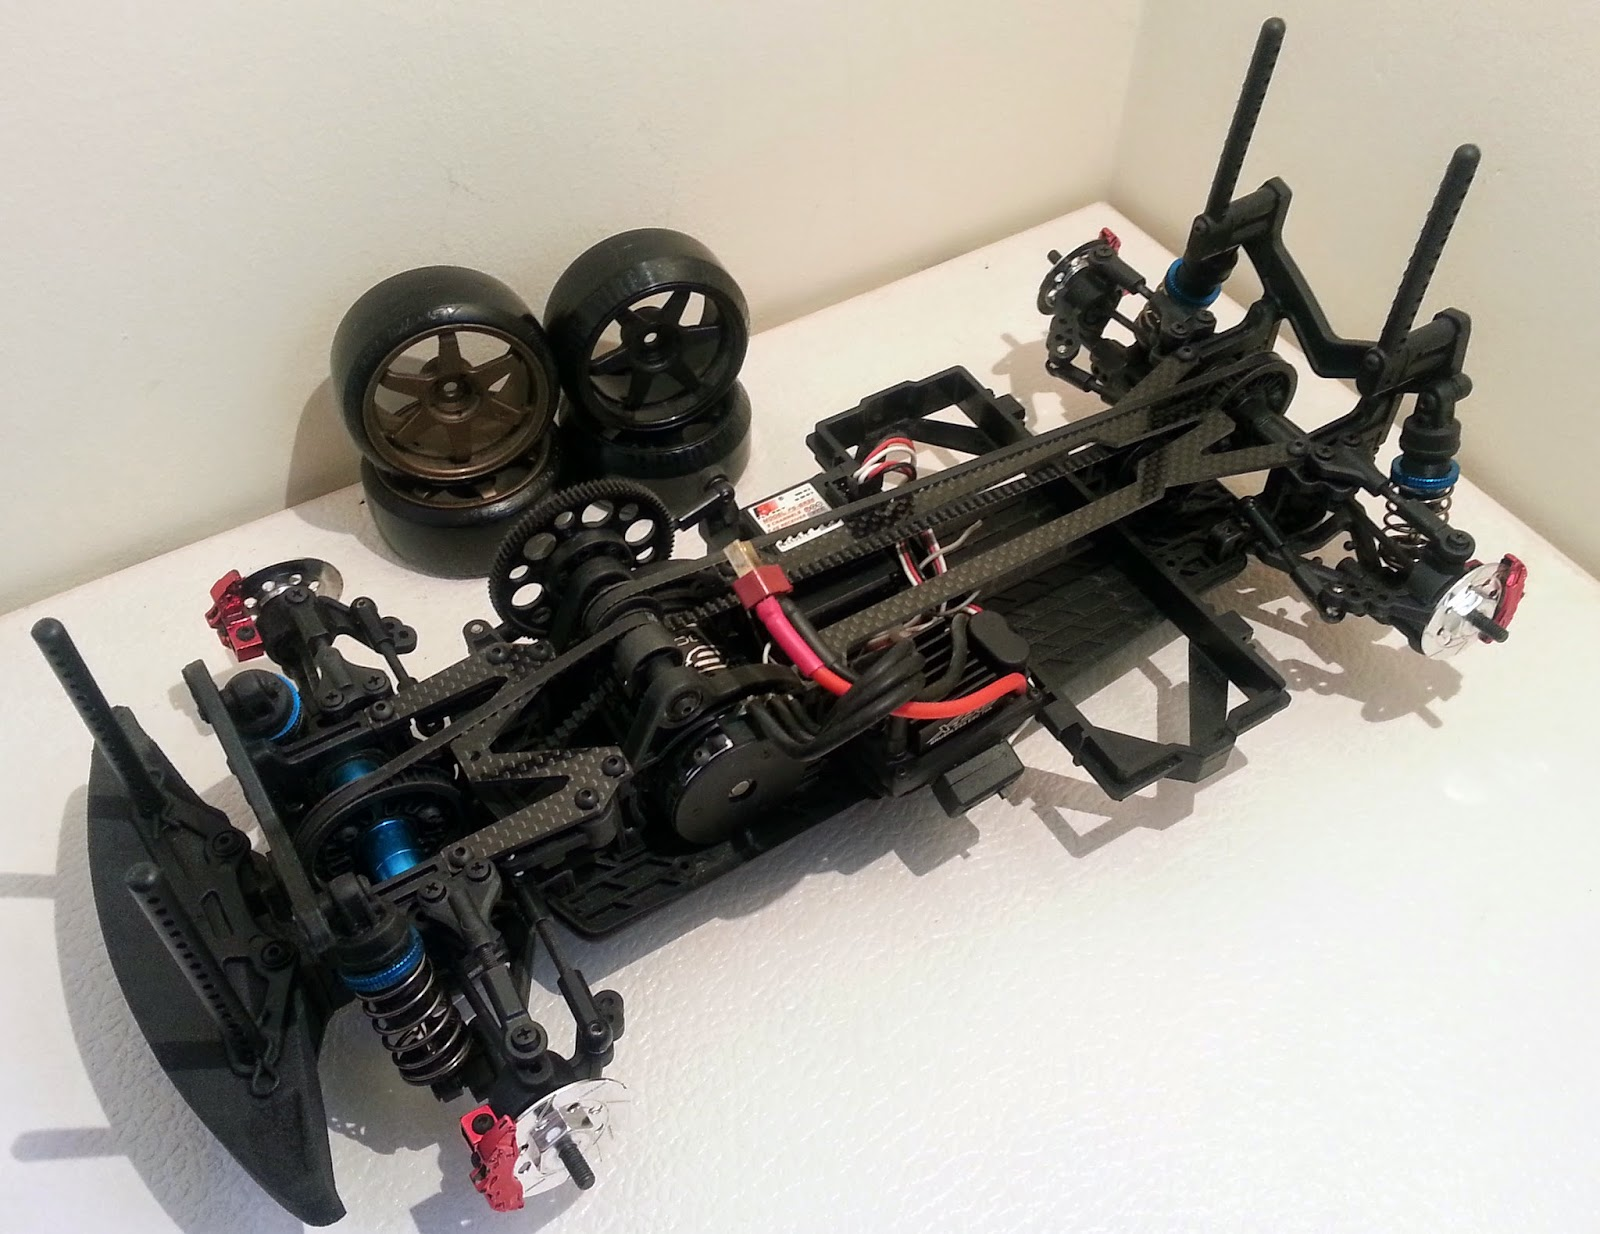 ?kami Drift Mst Ms 01d Review And Build Tips